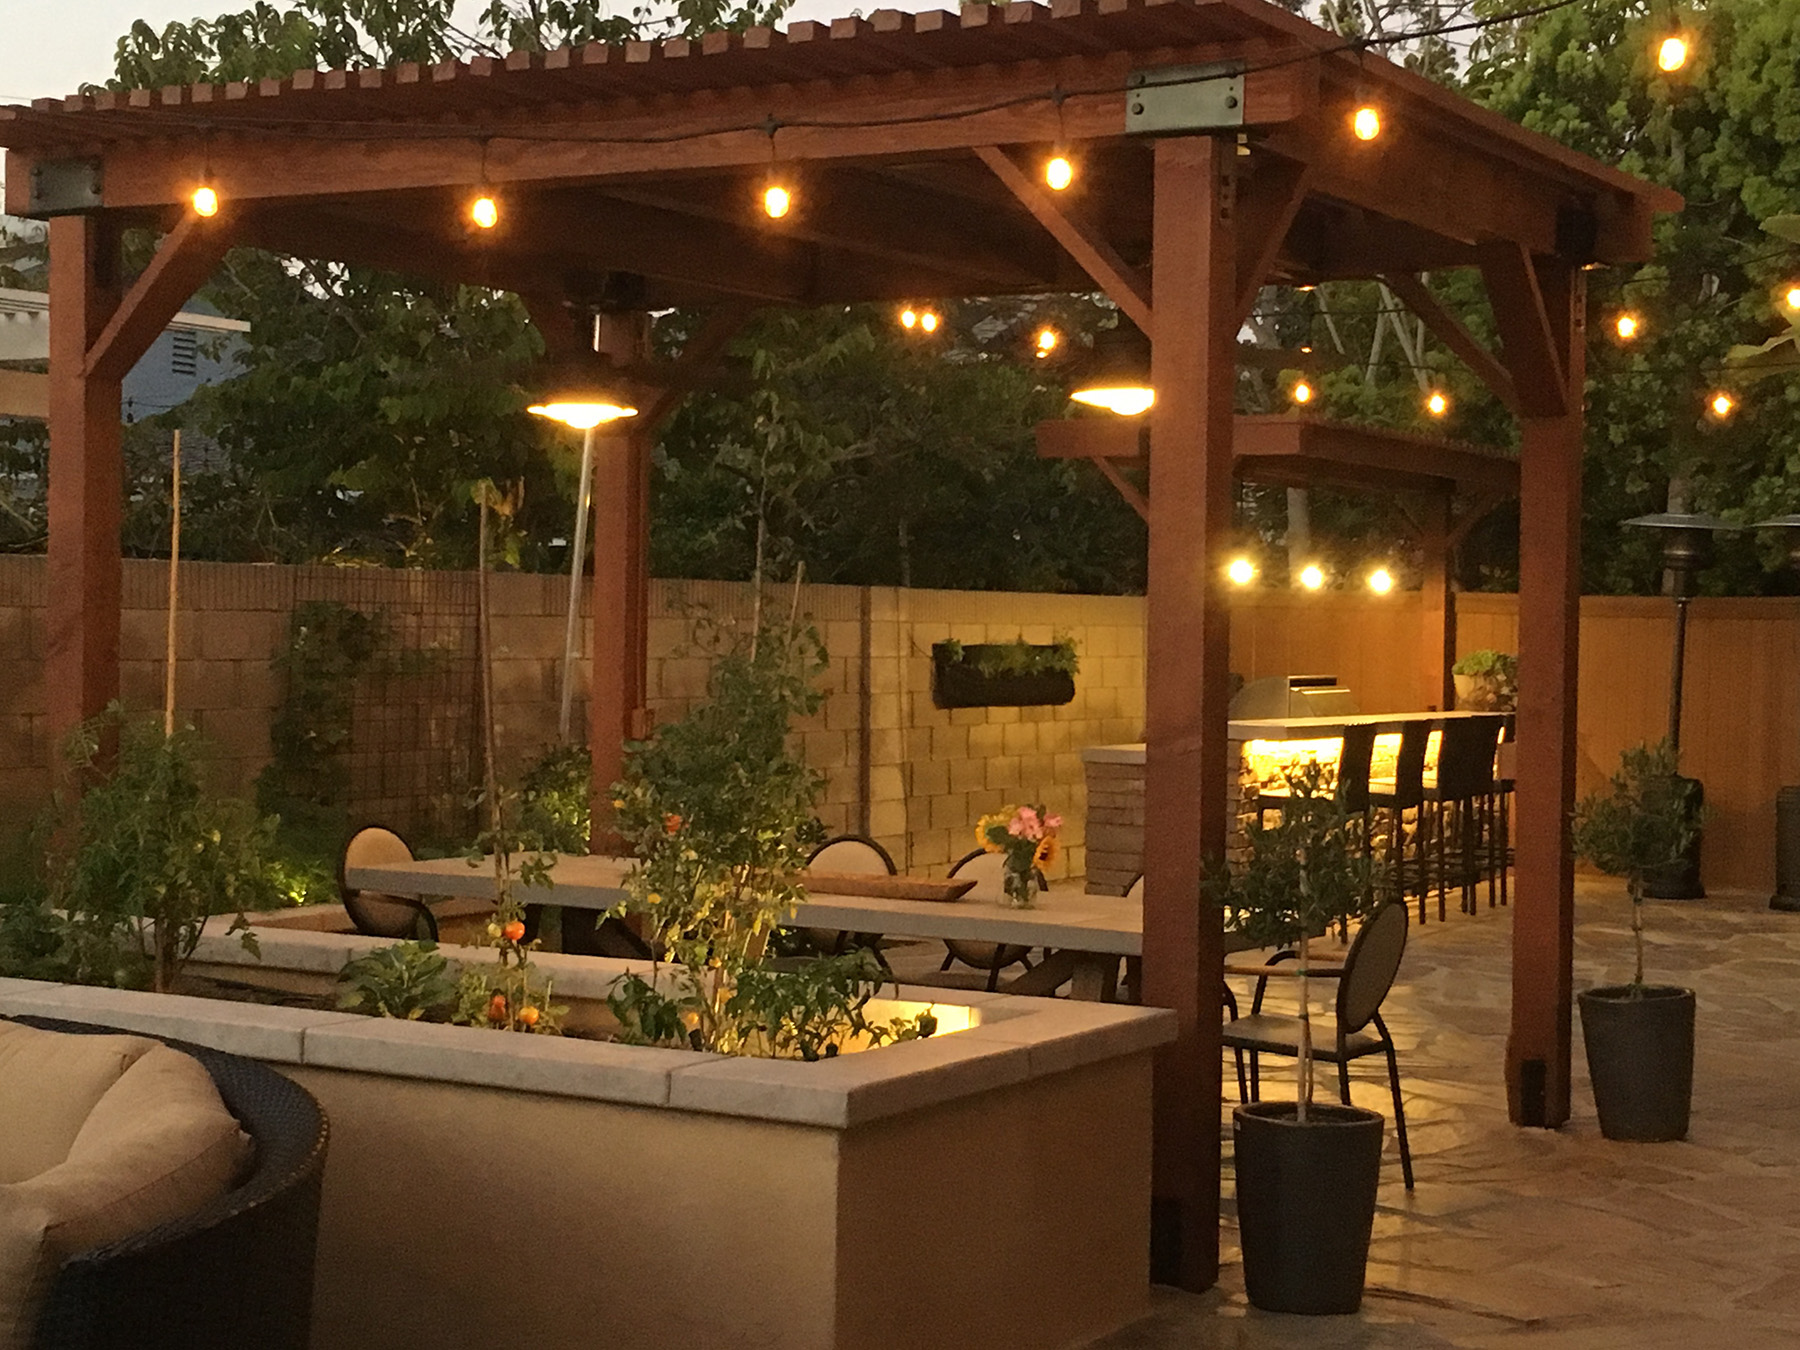 Bistro Lights with Planters and Pergola at Night